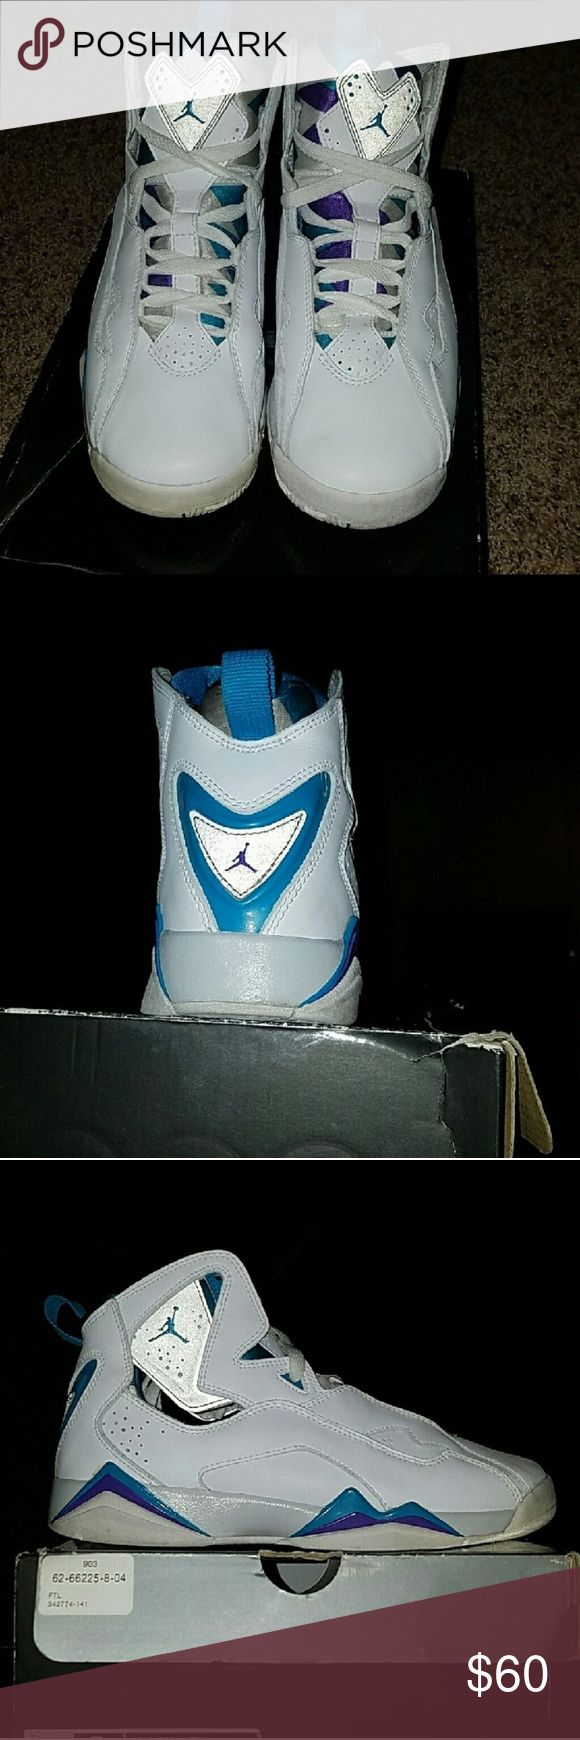 Rare Jordan True Flight Good Condition, Only Wore 2 or 3 Times. Size 7Y Boys & 8.5 Girls Jordan Shoes Sneakers